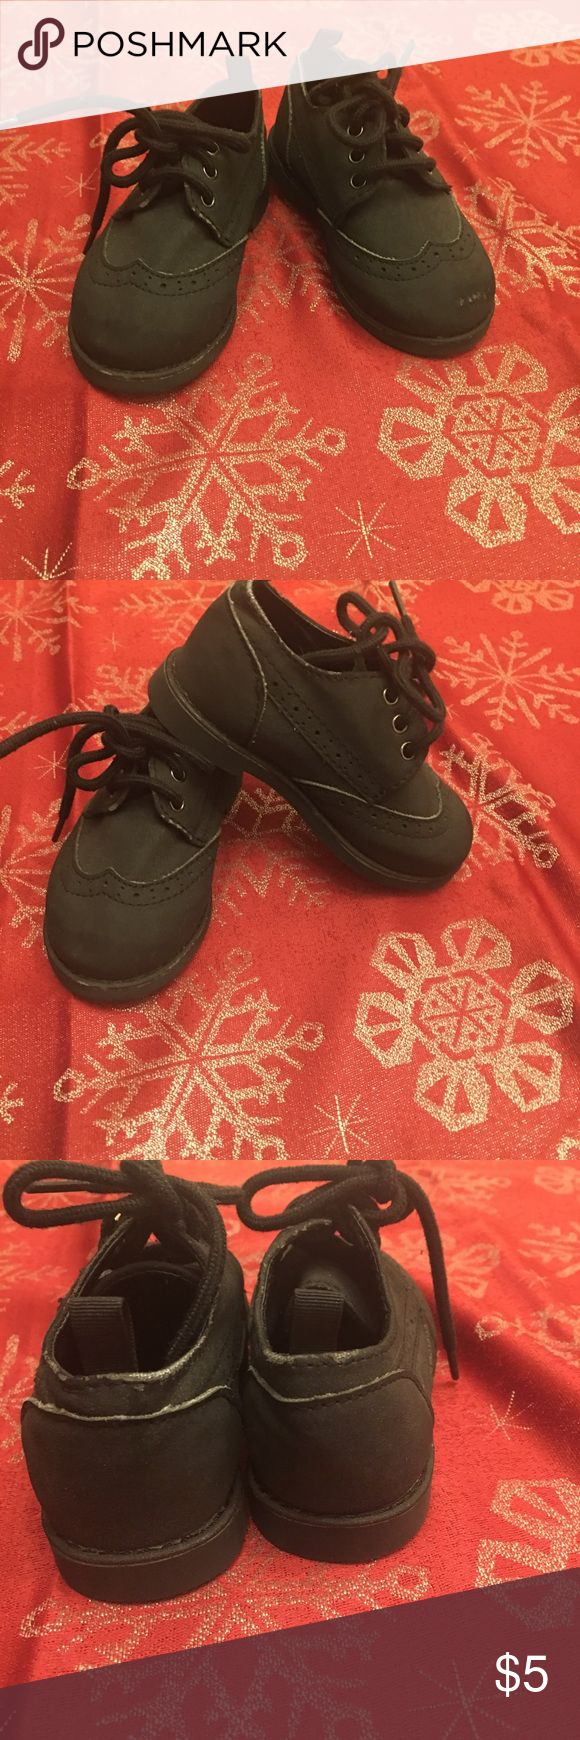 Koala Kids Toddler Boys Dress shoes Scuff on front Only used once bundle with other items for an even better deal! Size 6 Shoes Dress Shoes